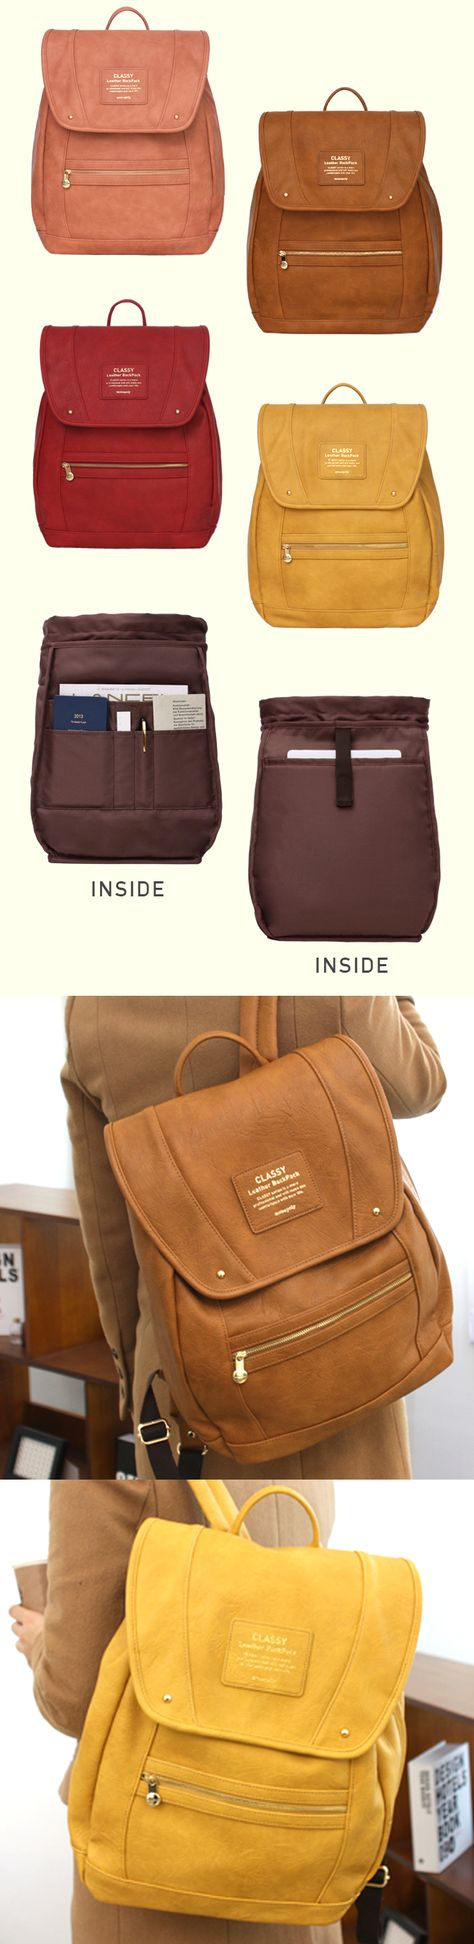 """So nice! This stylish leather backpack has a built-in cushioned 13"""" laptop pocket…no need for a laptop case! The perfect backpack for class, with 8 additional pockets for organizing all your school supplies. Rain-resistant coating on the outside makes this the best bag for all weather, too! Comes in 4 different super cute colors <3"""